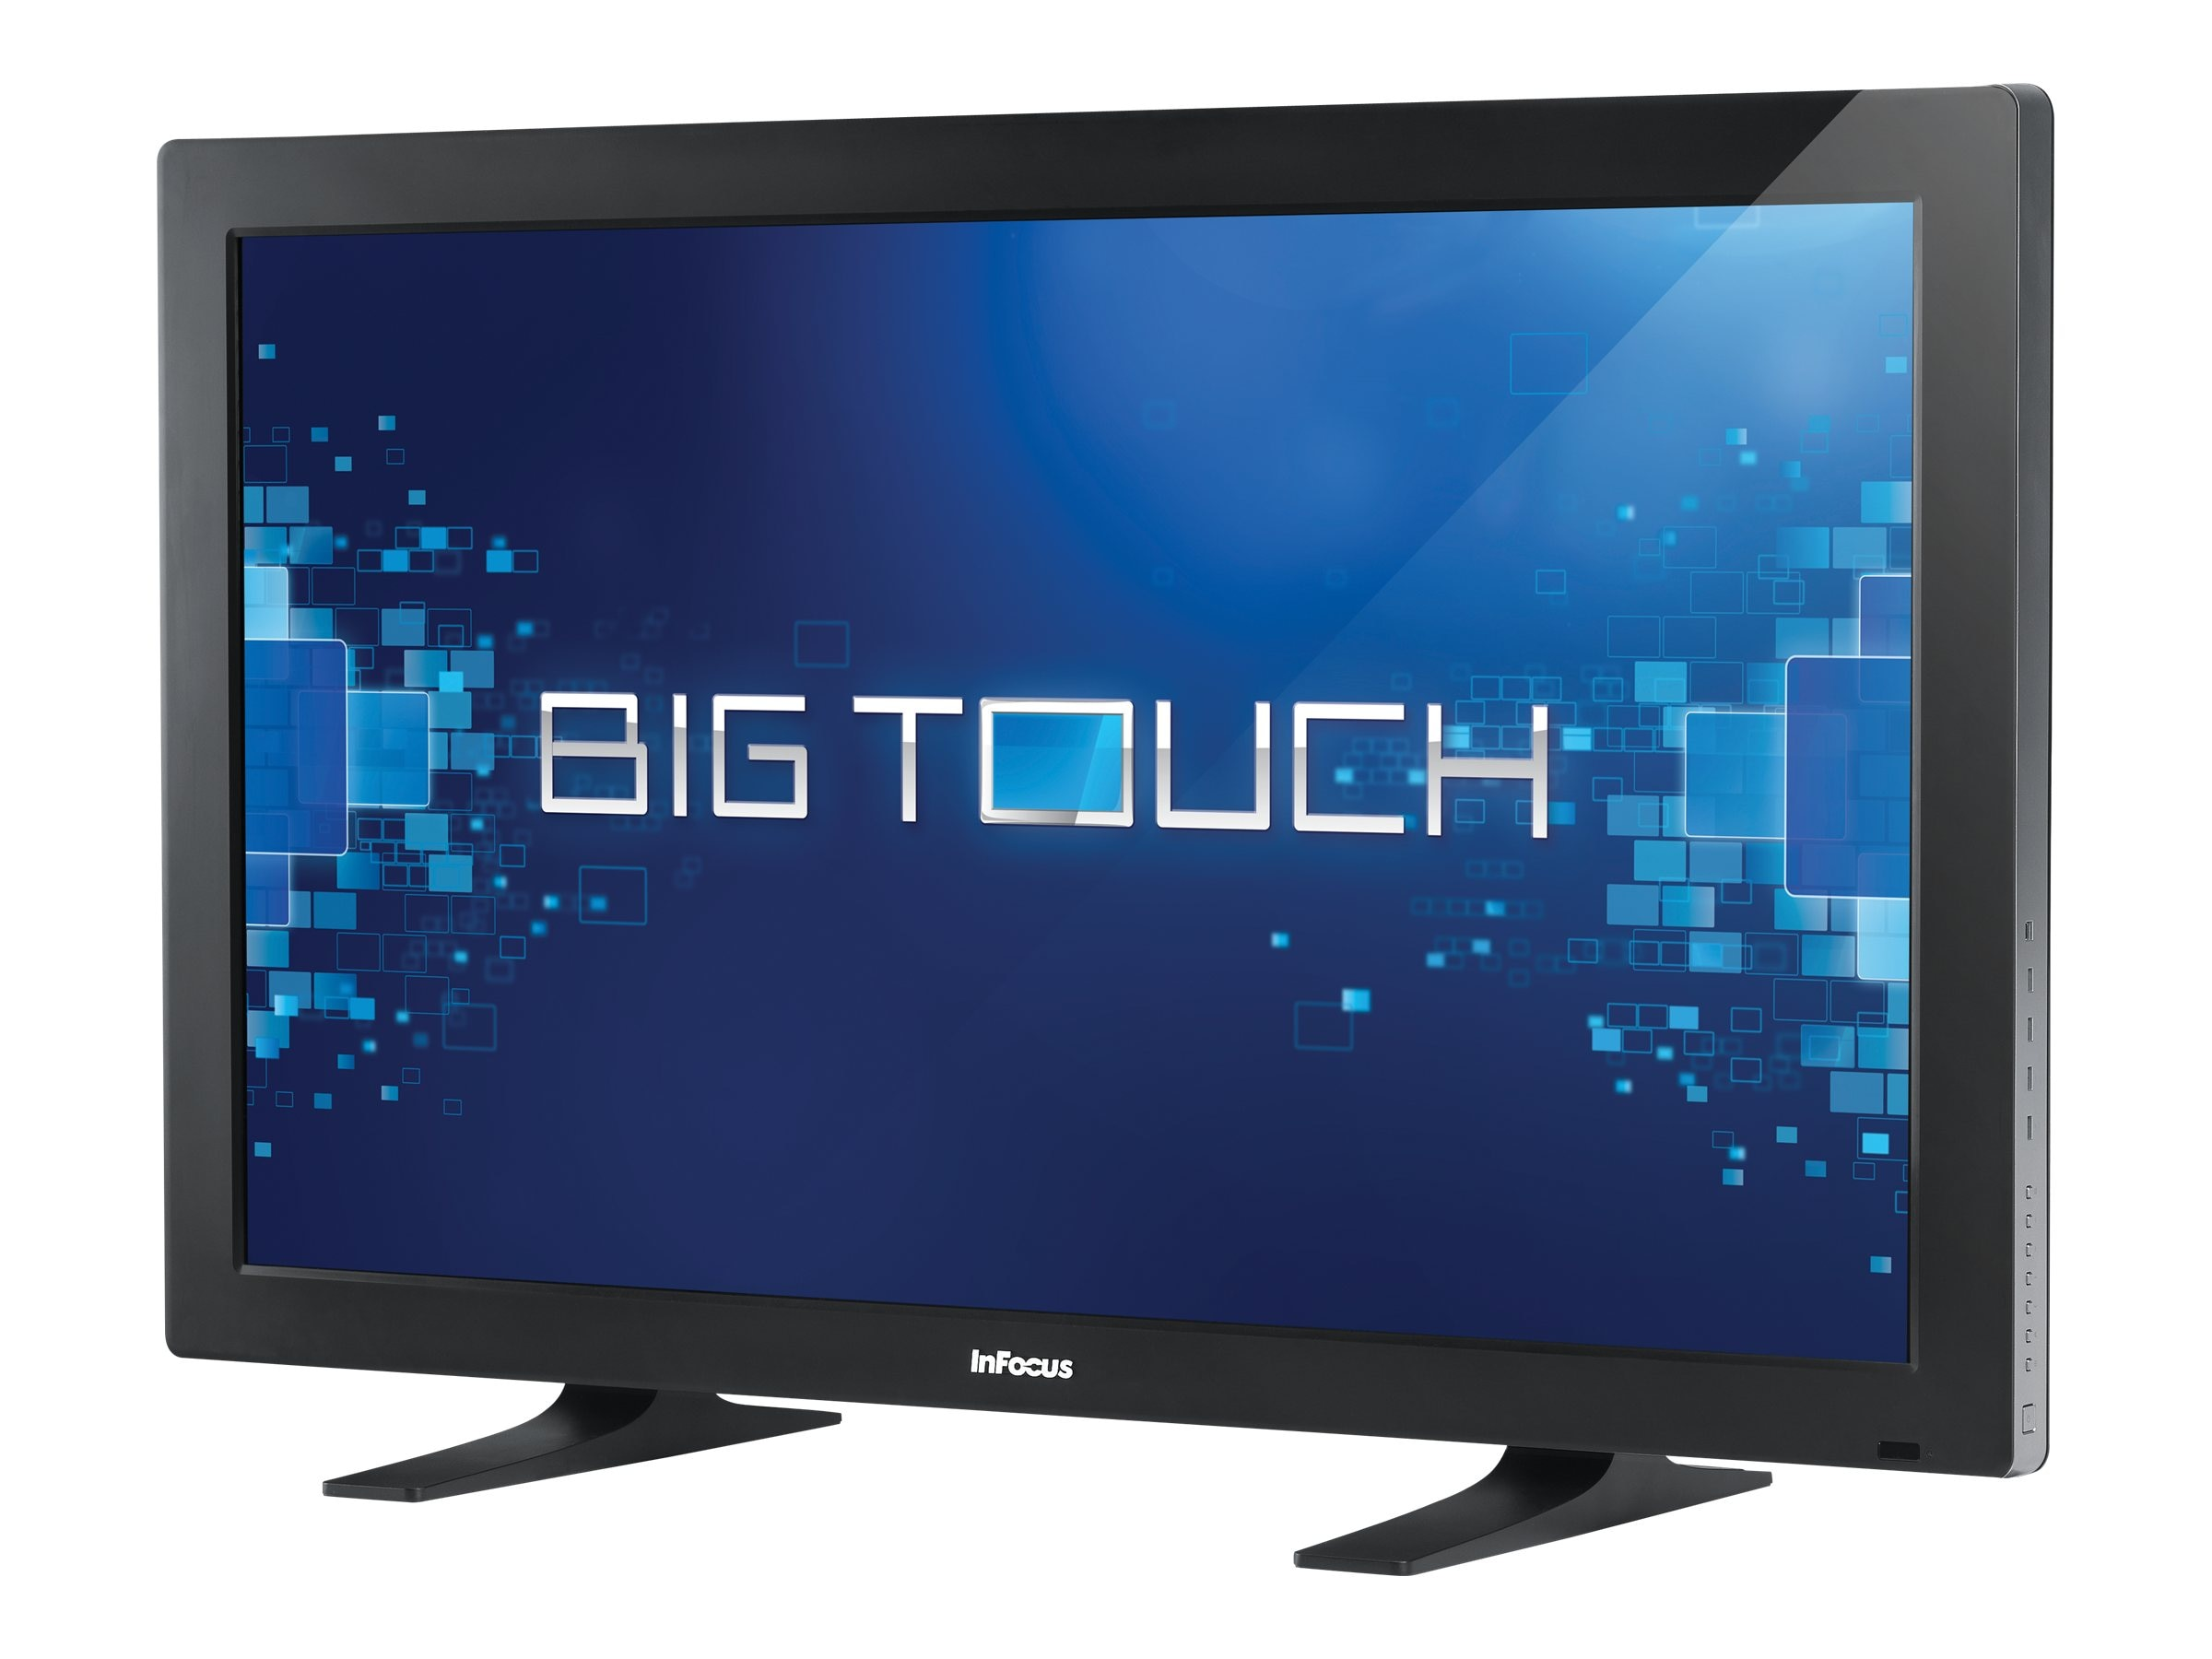 InFocus 55 BigTouch AIO Full HD Touchscreen Display, Black, INF55WIN8-KIT